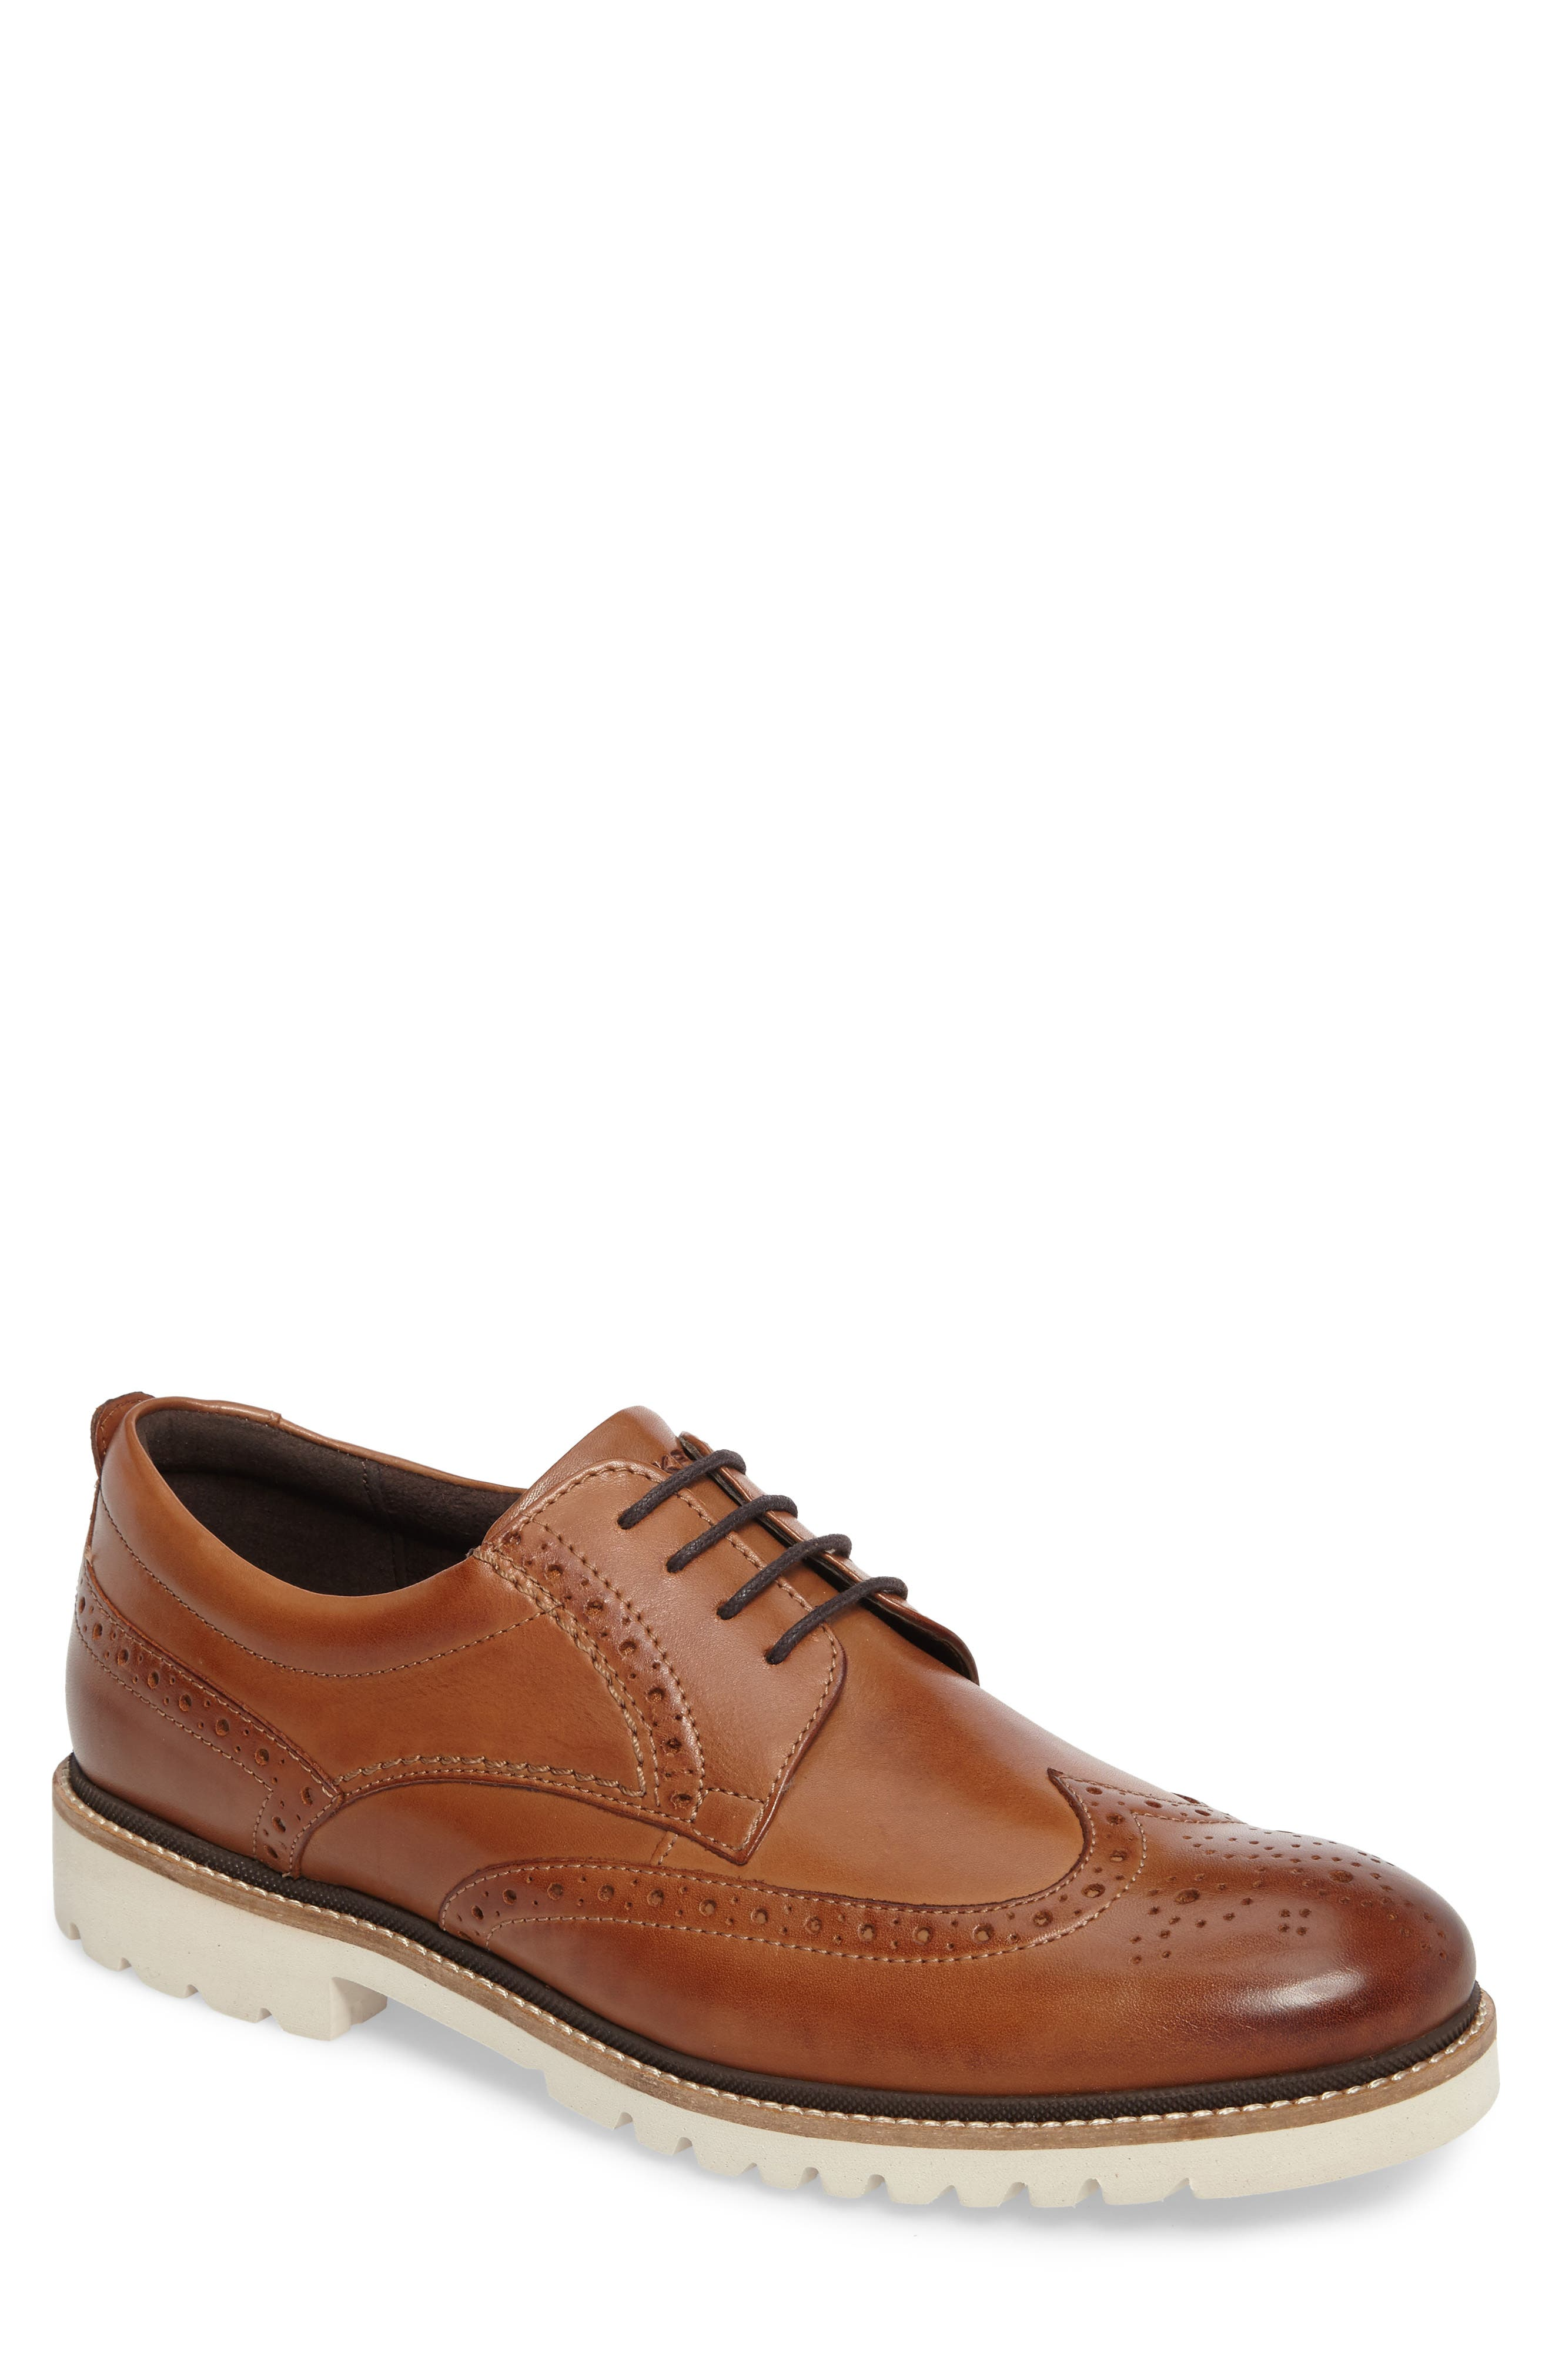 Marshall Wingtip,                             Main thumbnail 1, color,                             Cognac Leather